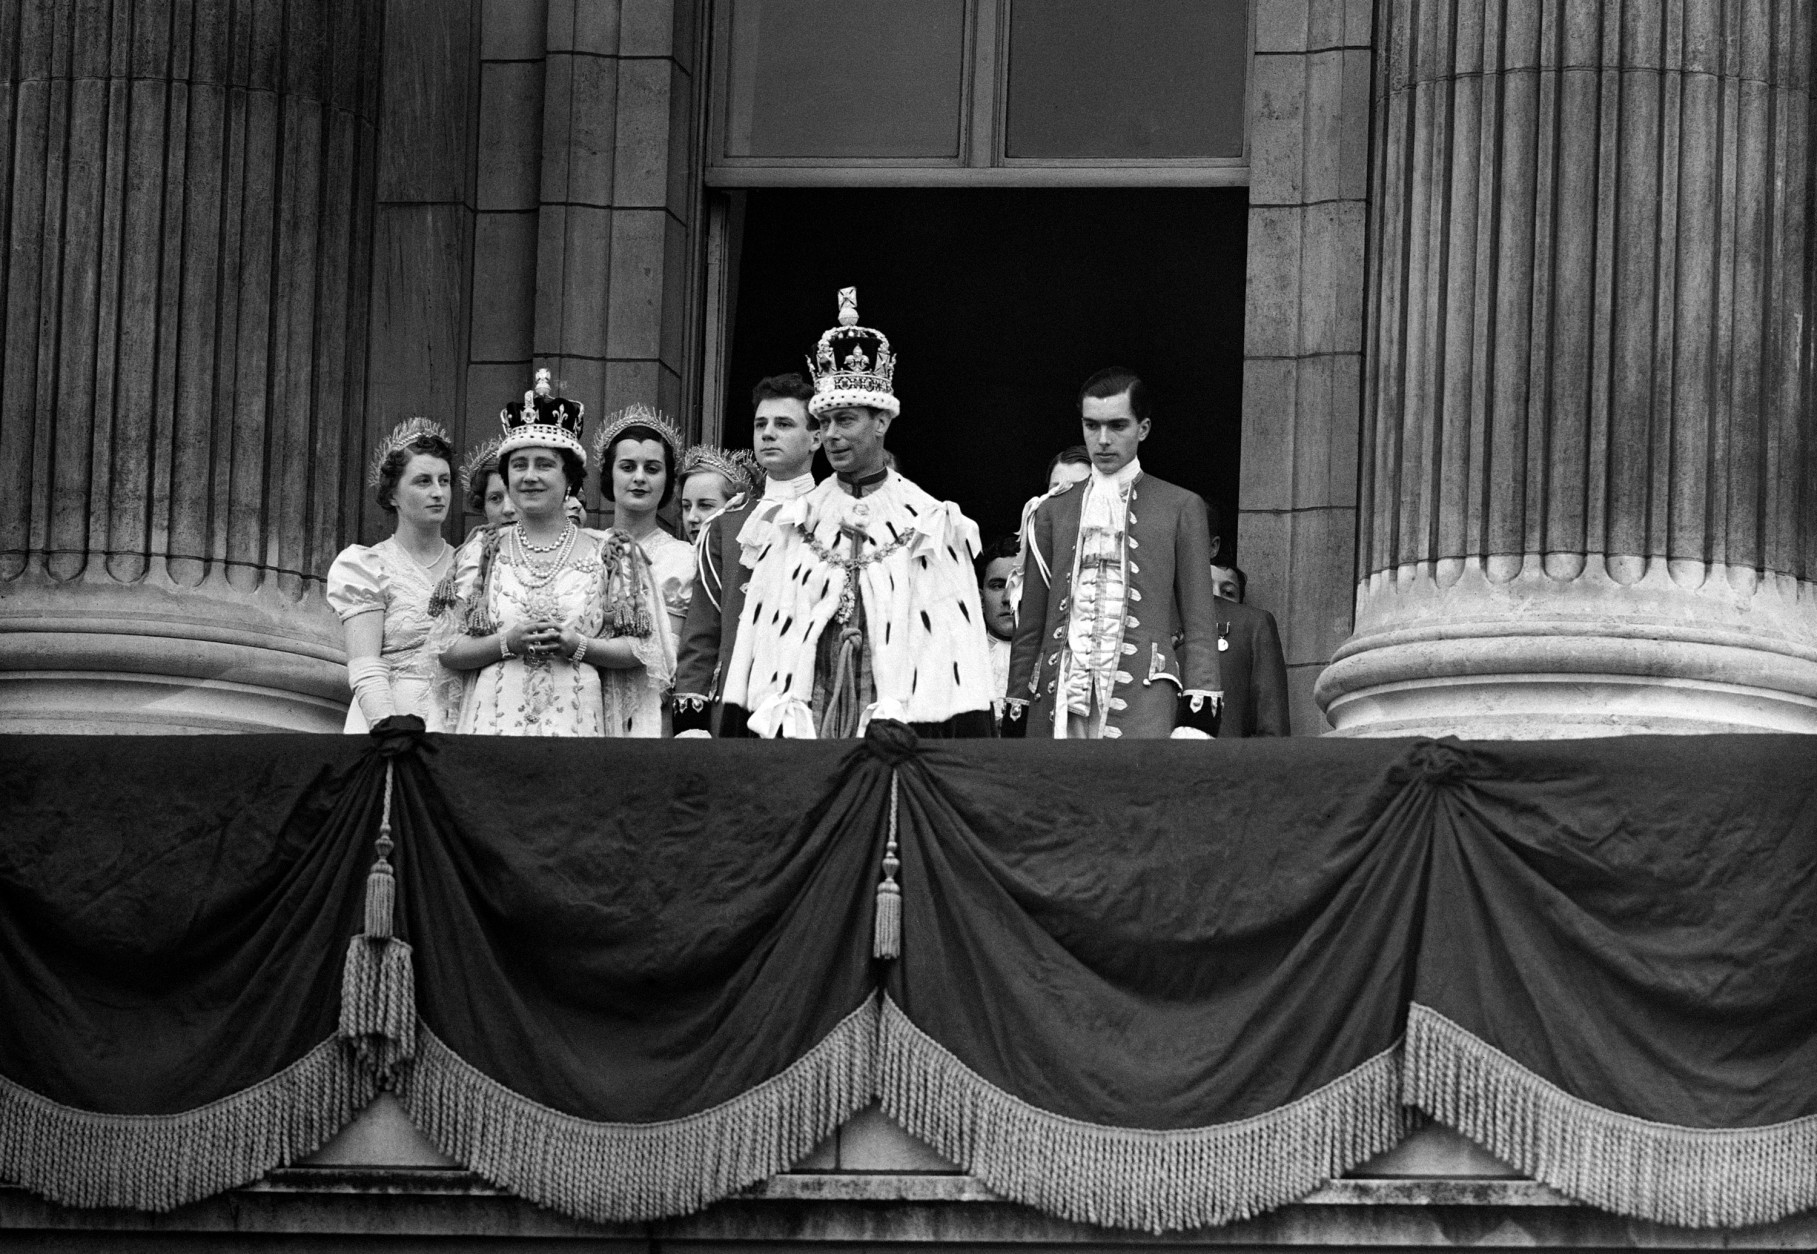 King George VI and Queen Elizabeth on the balcony of Buckingham Palace, in London, on their return from Westminster Abbey, on May 12, 1937, following their Coronation service. (AP Photo)